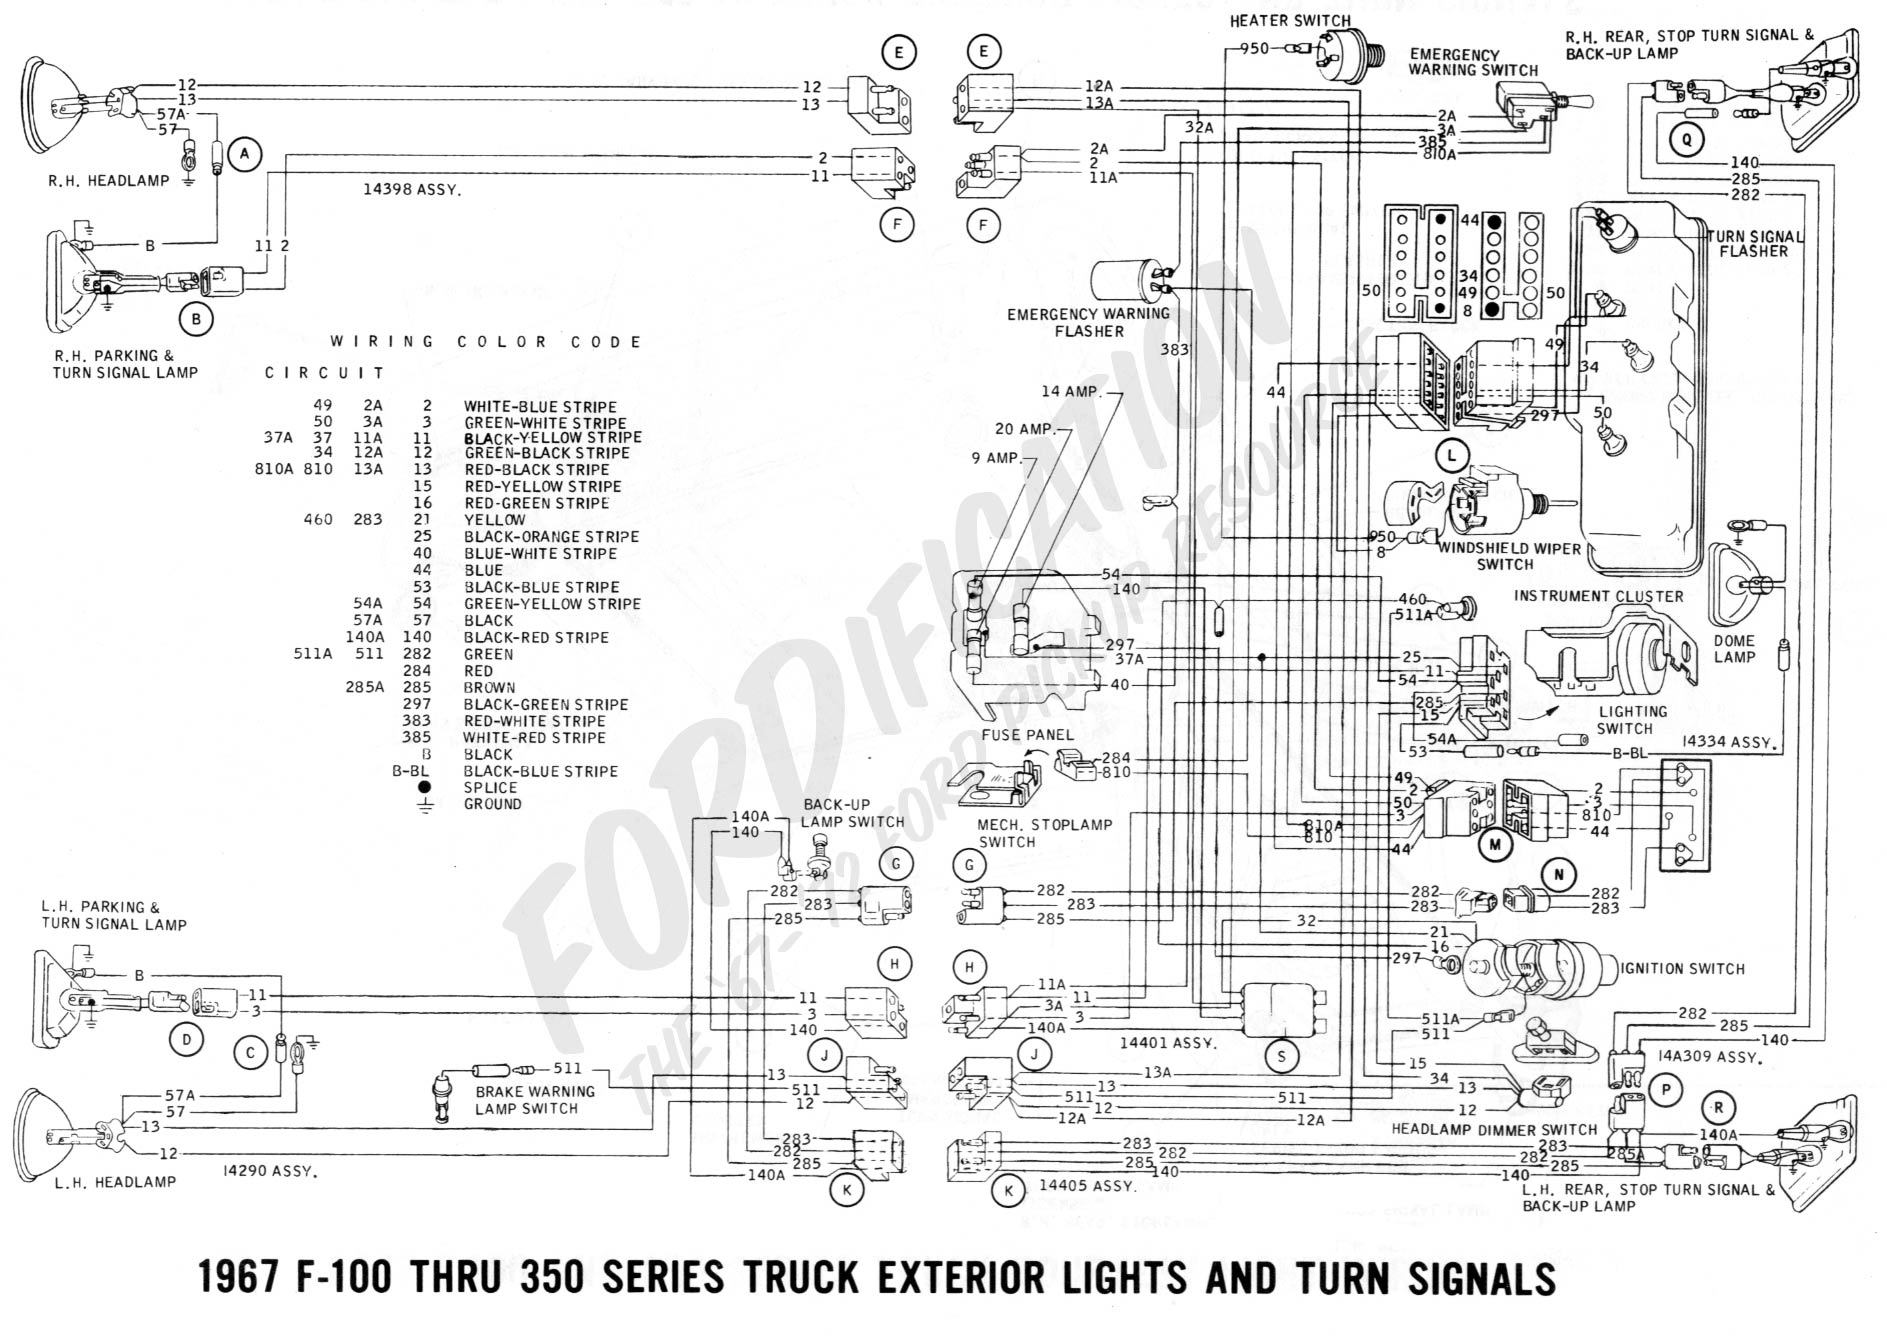 Ignition Switch Wiring For A 1954 Ford Car additionally Schematics i also 73 Mustang Fuse Box also Purge Valve Location F250 also Coil Burning Hot Why. on 1971 ford f 250 fuse box